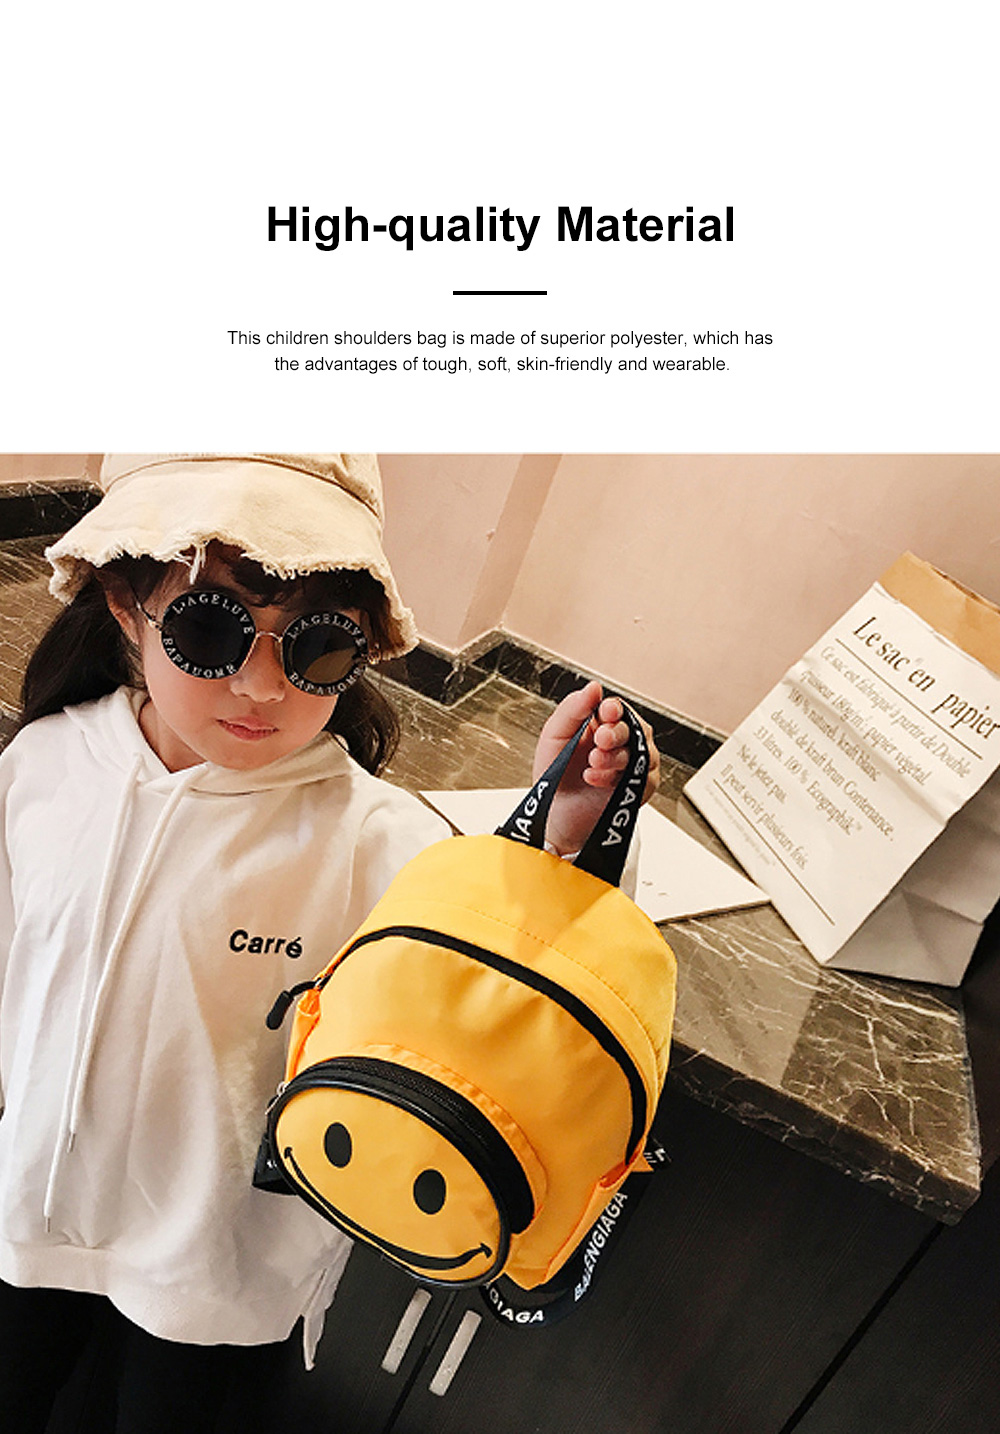 Cute Cartoon Smile Face Painting Children Backpack, Small Outdoors Traveling Shoulders Bag for Boys Girls 4